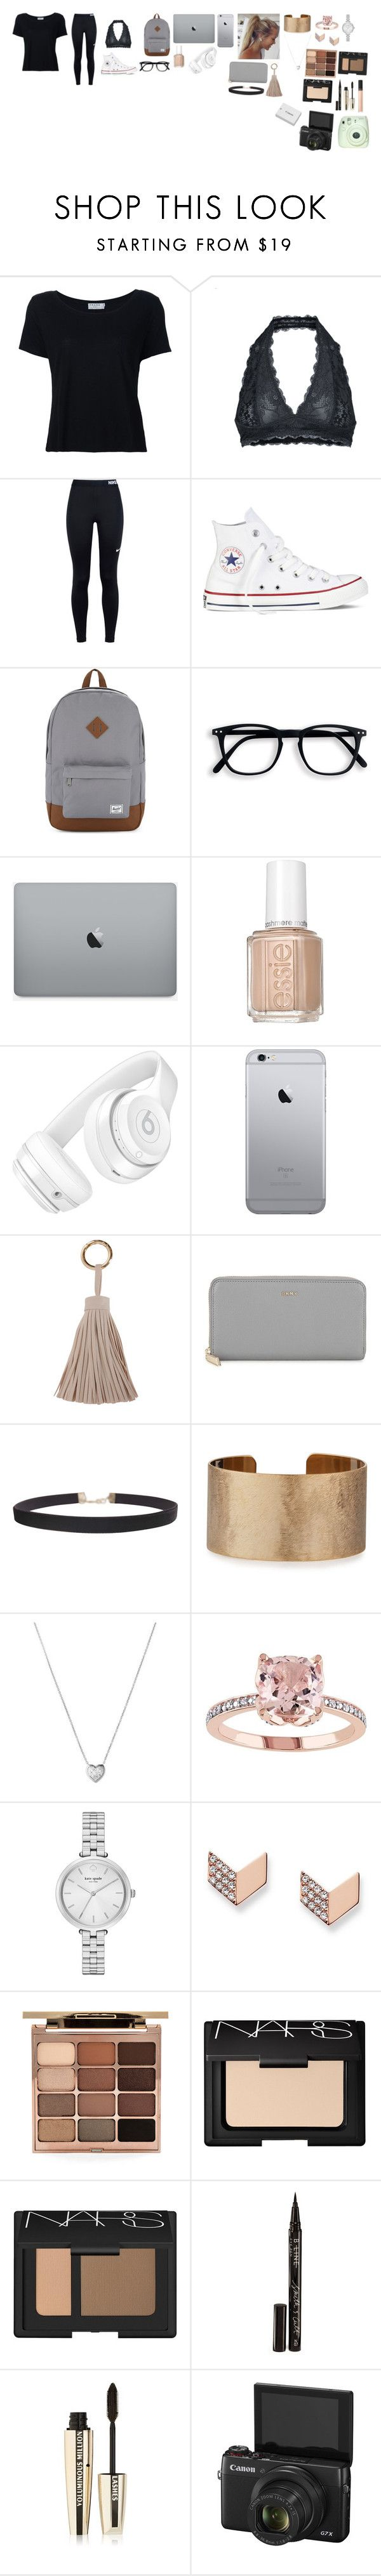 """""""Picture day with family📷🎥💄👠💋"""" by katelynrose123 ❤ liked on Polyvore featuring Frame Denim, Free People, NIKE, Converse, Herschel Supply Co., Beats by Dr. Dre, Humble Chic, DKNY, Panacea and Links of London"""